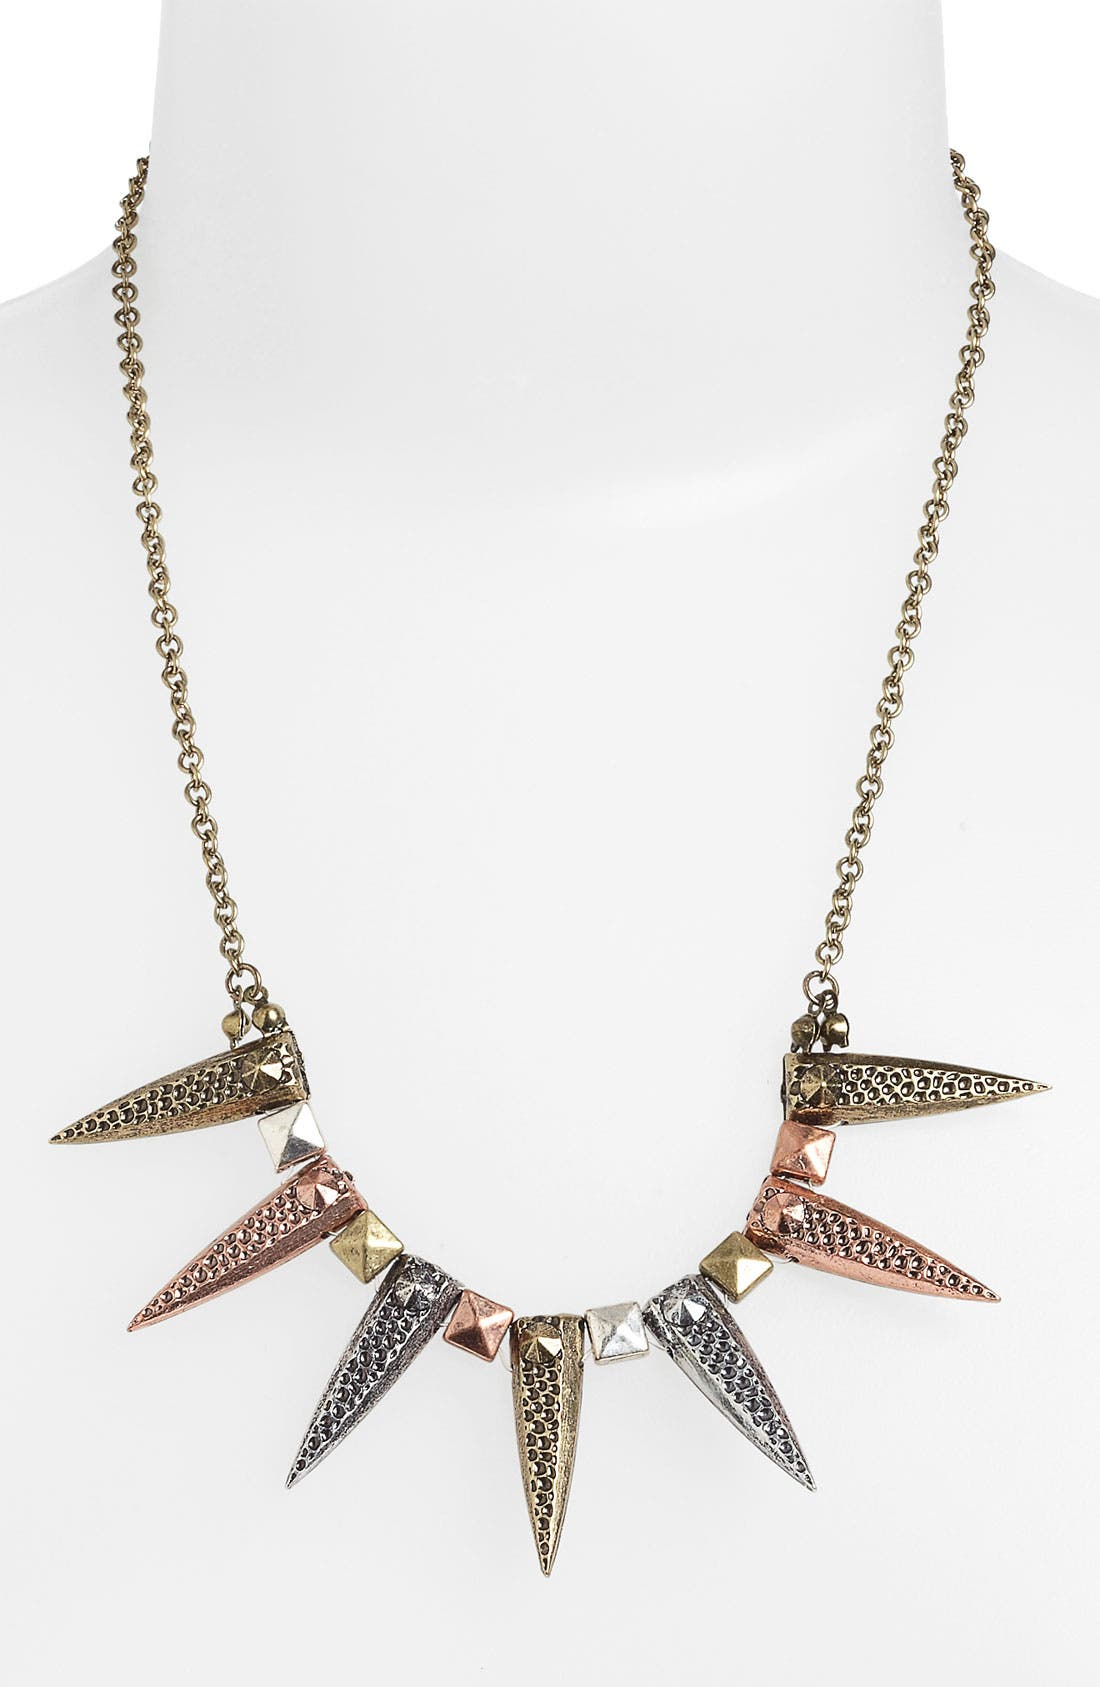 Alternate Image 1 Selected - Statements by DCK Mixed Metal Spike Necklace